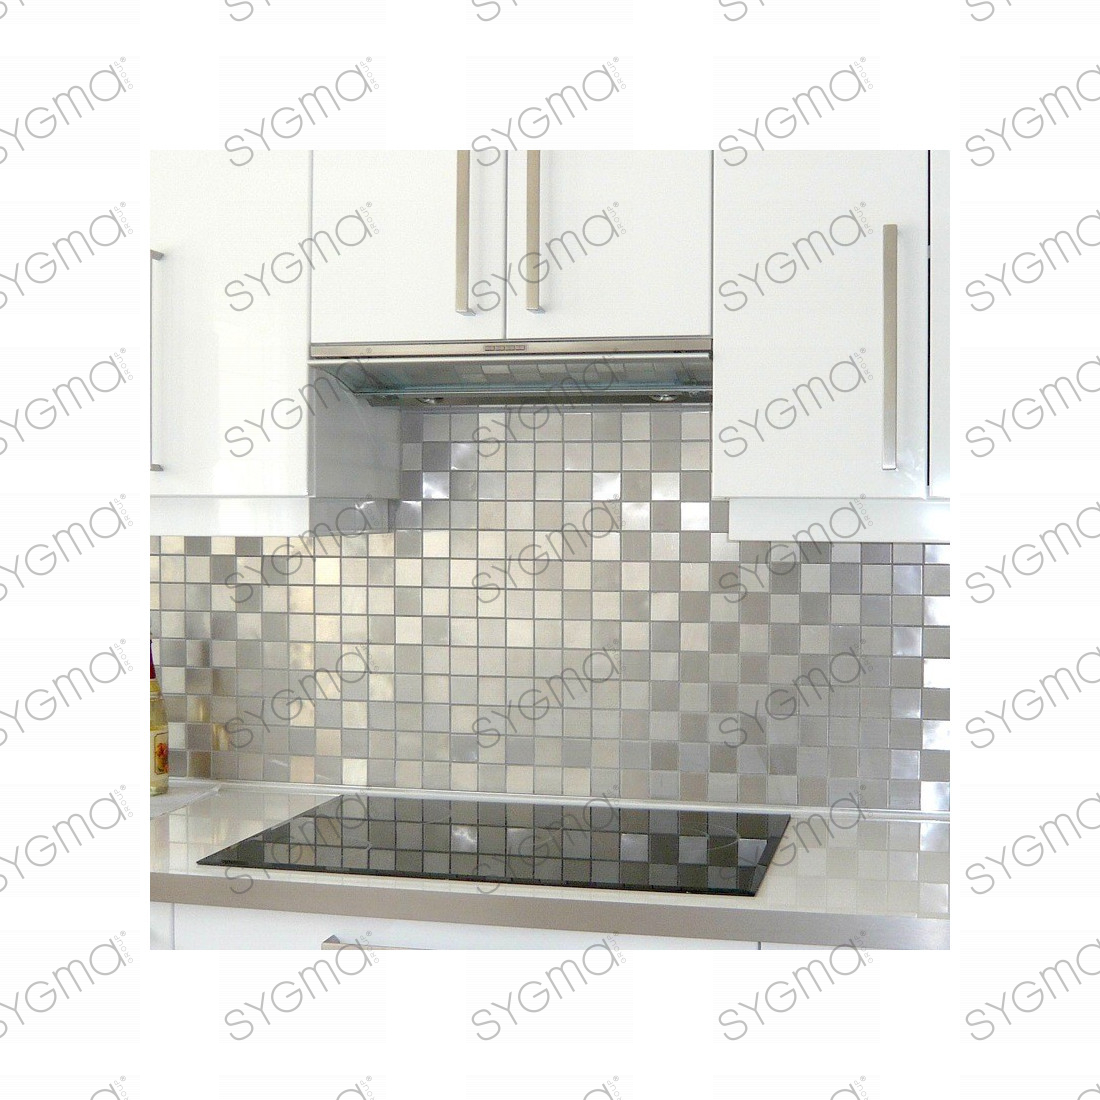 mosaique douche carrelage inox cr dence cuisine damier 48 carrelage. Black Bedroom Furniture Sets. Home Design Ideas